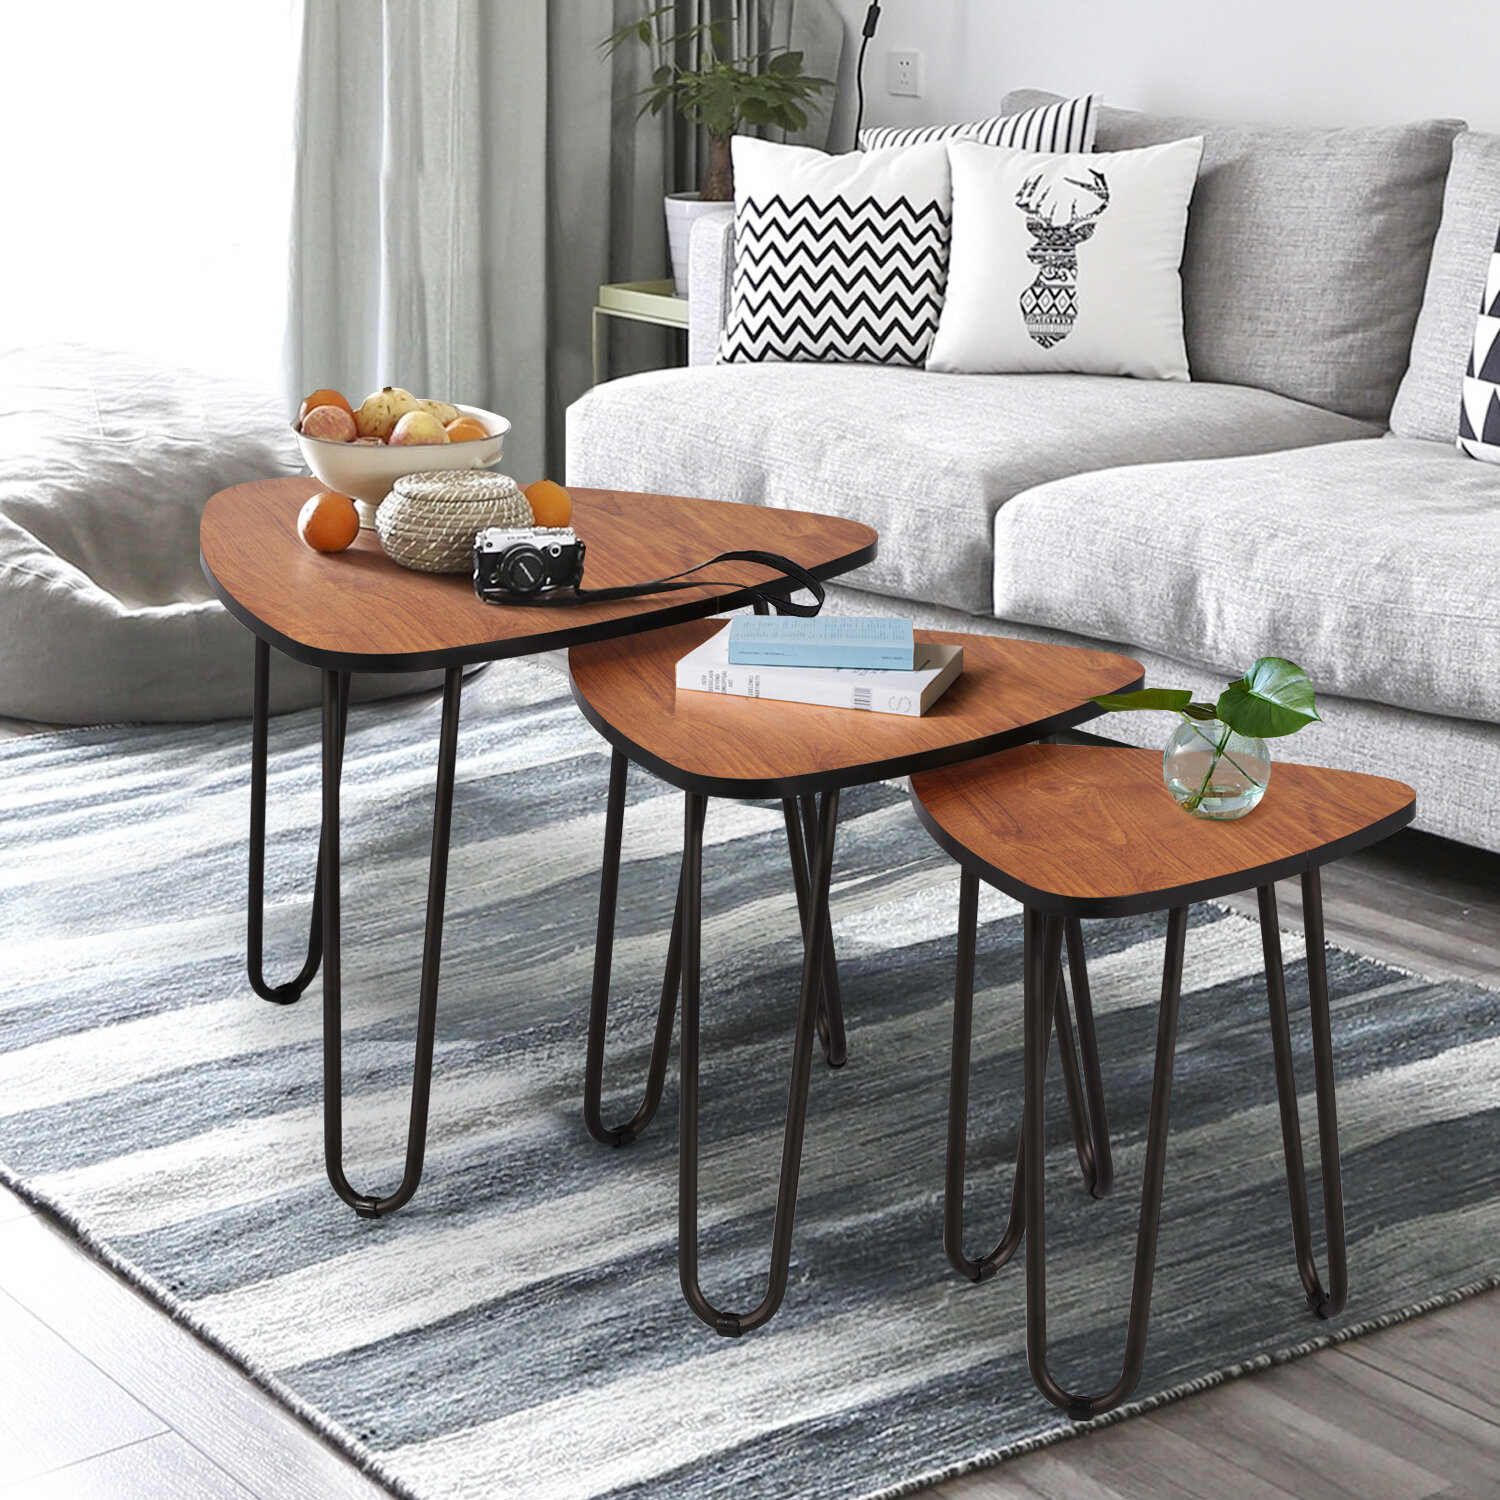 3 Nesting Coffee Tables You Ll Love In 2021 Wayfair